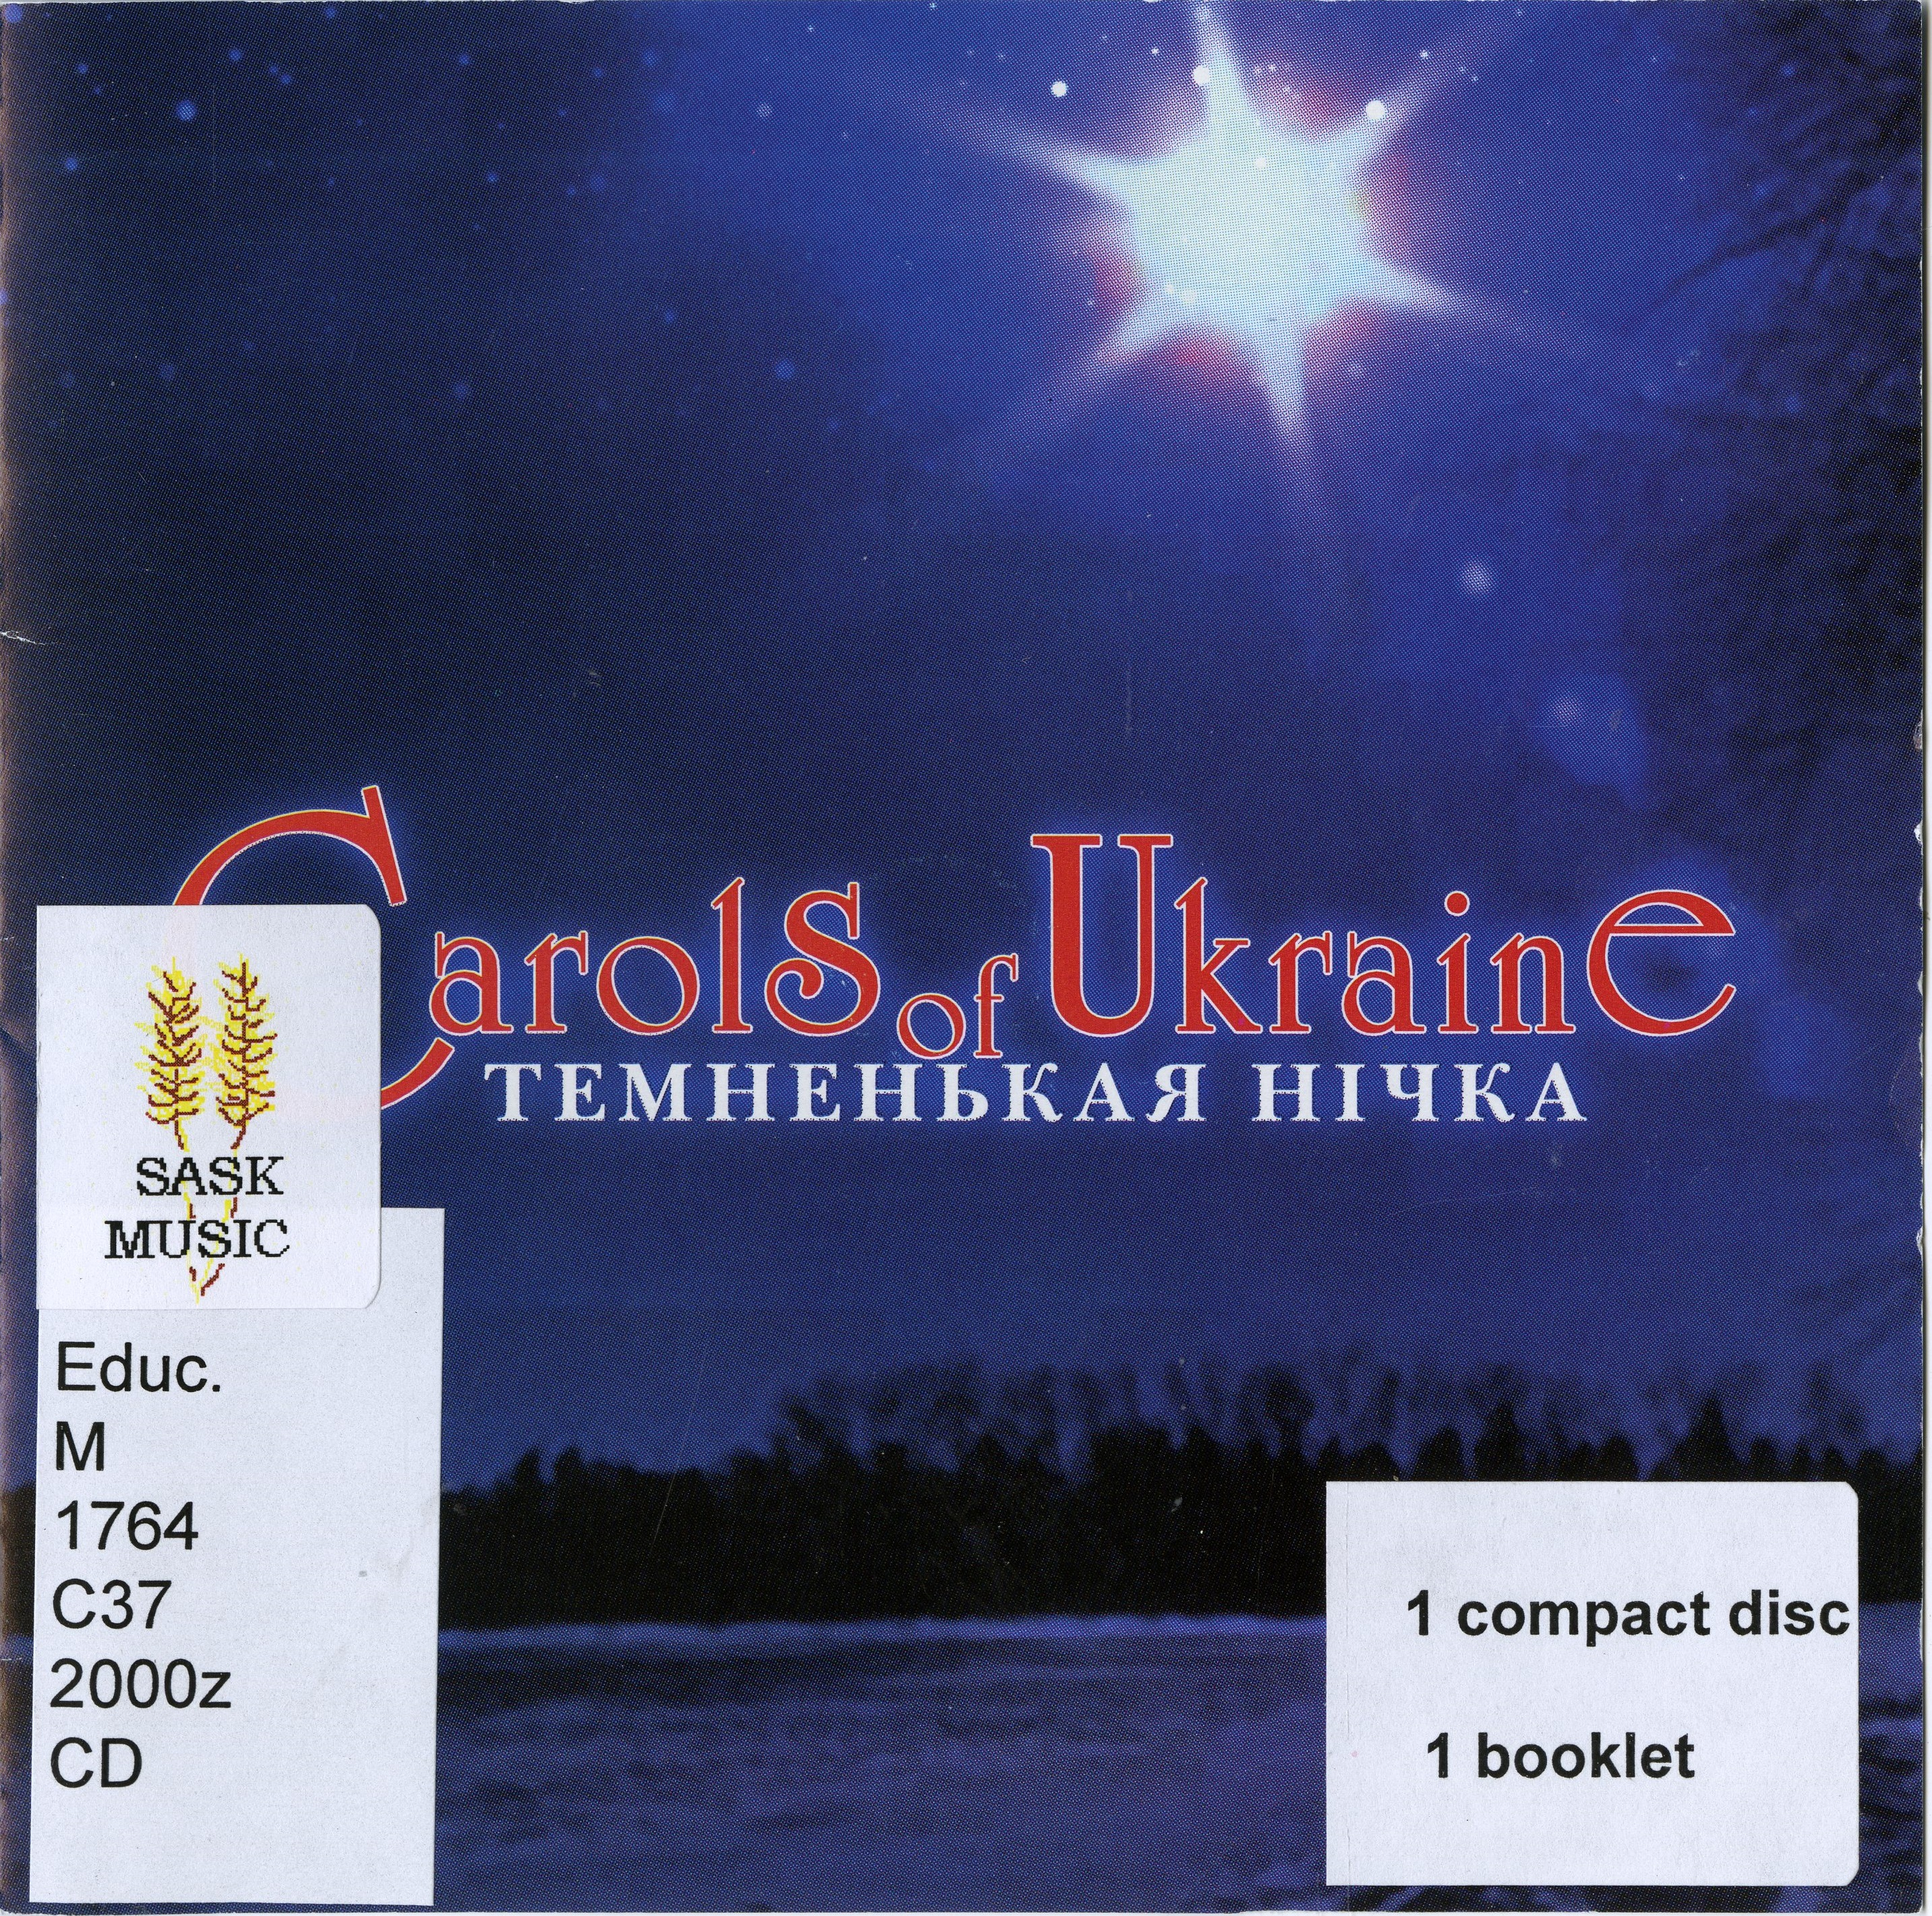 Carols of Ukraine